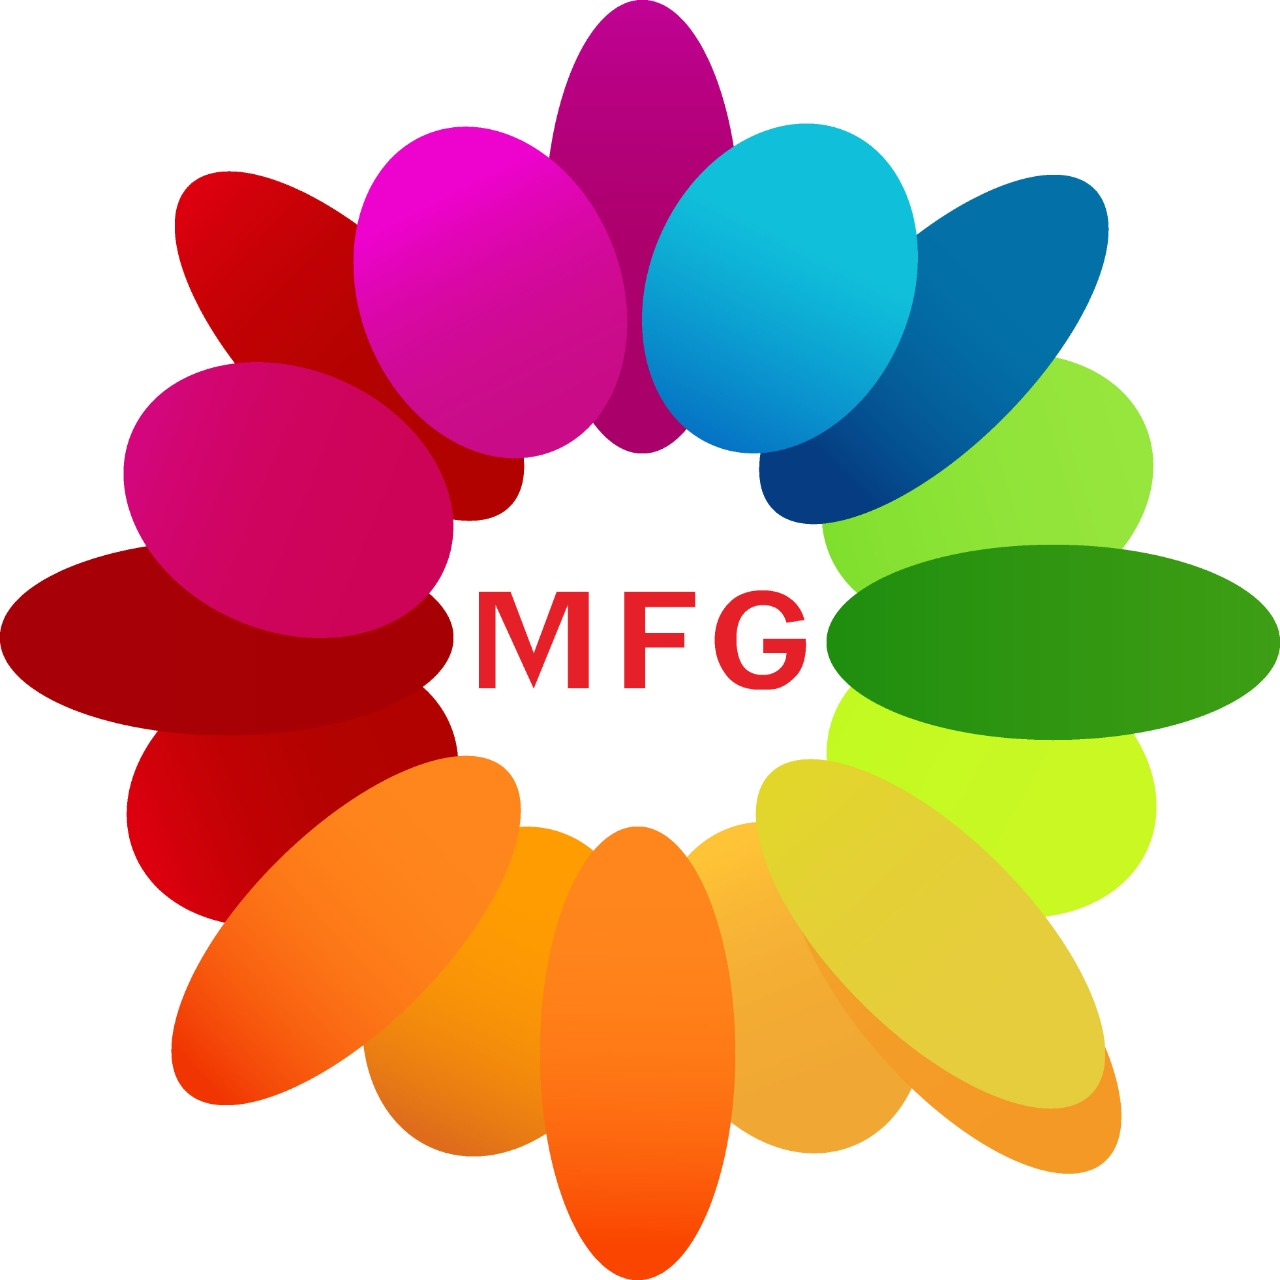 1000 roses with 3 feet teddy with heart shape ball myflowergift 1000 roses with 3 feet teddy with heart shape ball izmirmasajfo